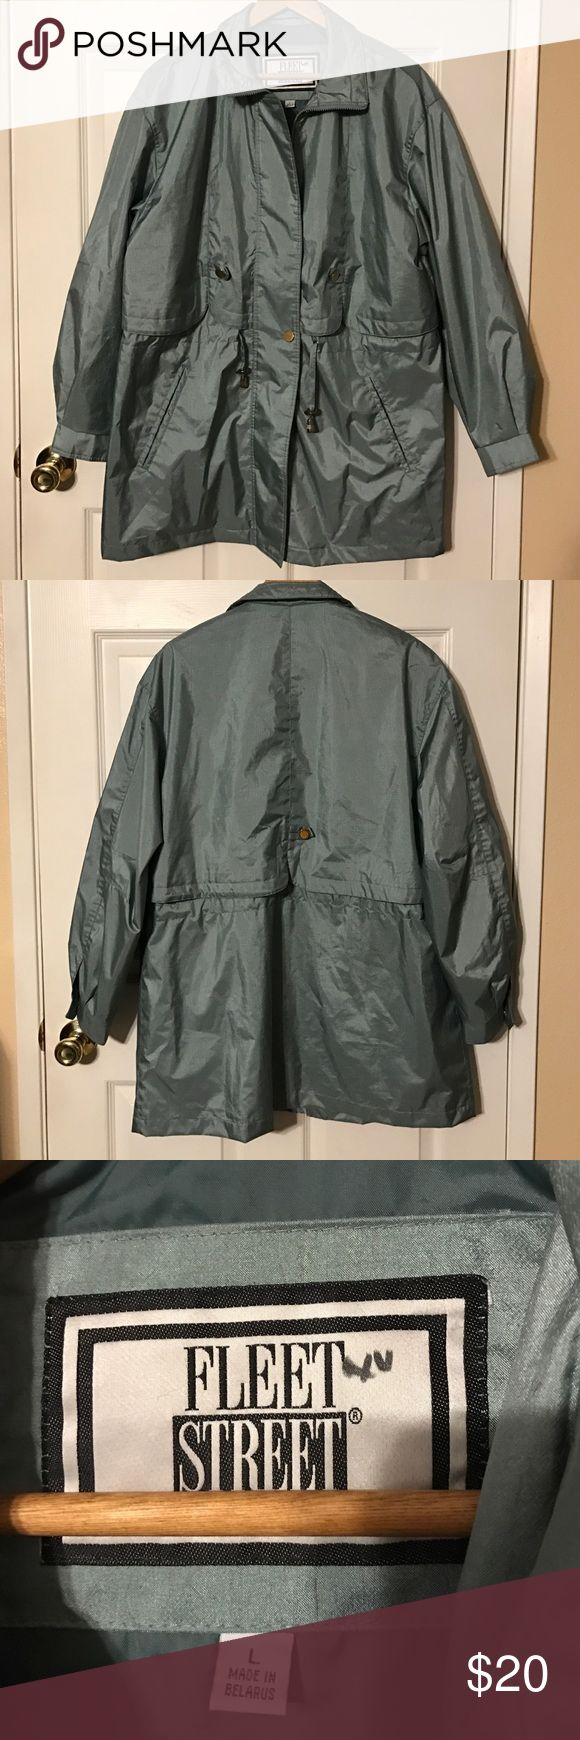 Mint/ sage green women's lightweight jacket Beautiful lightweight rain coat in a beautiful spring color. Mint/ sage like color, that has a metallic sheen to it. Has a waist draw string and two hand pockets. fleet street Jackets & Coats Trench Coats